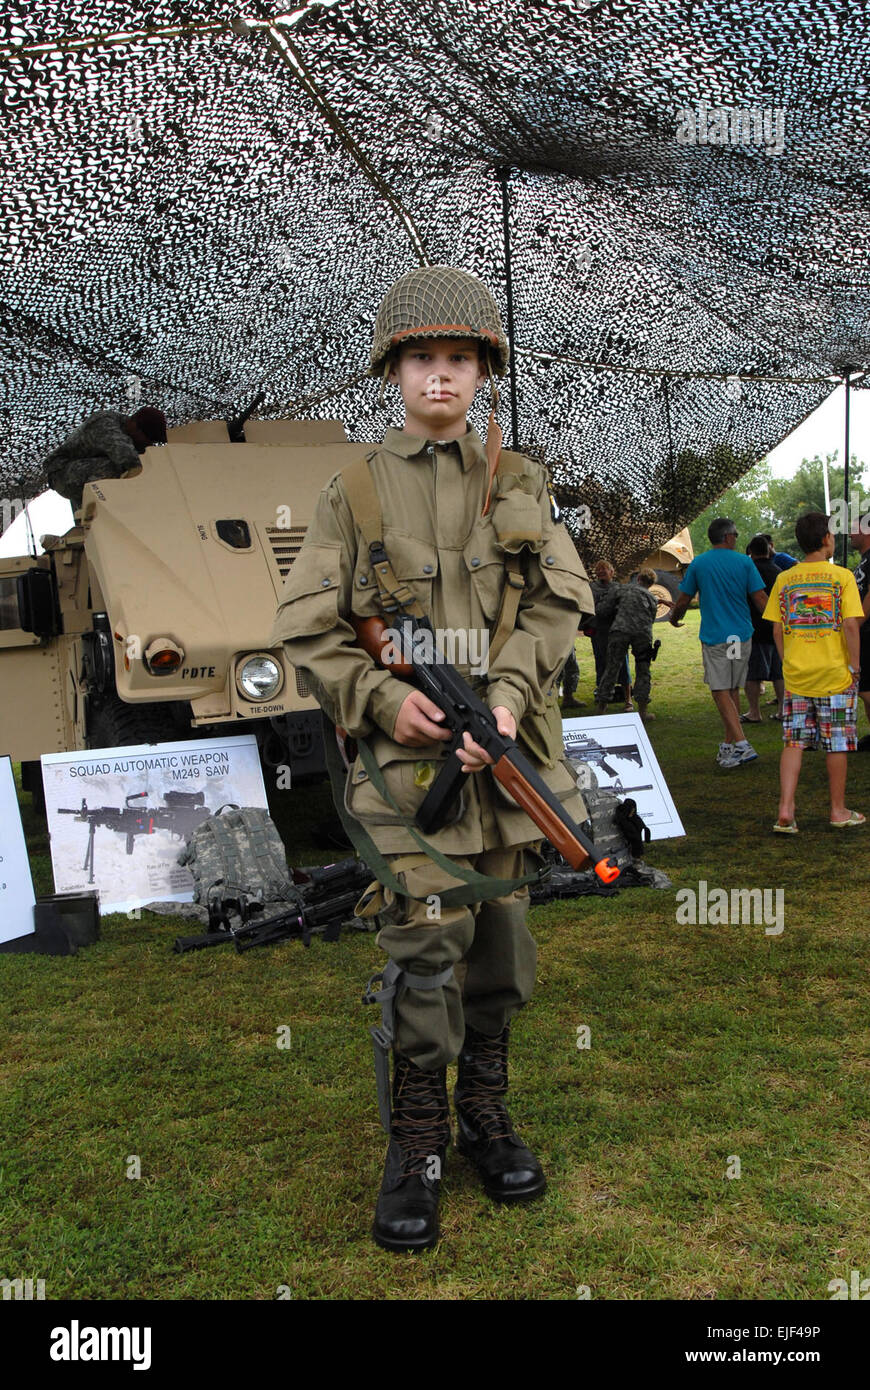 A young boy dressed in an old paratrooper uniform stands ready during the 69th National Airborne Day celebration - Stock Image